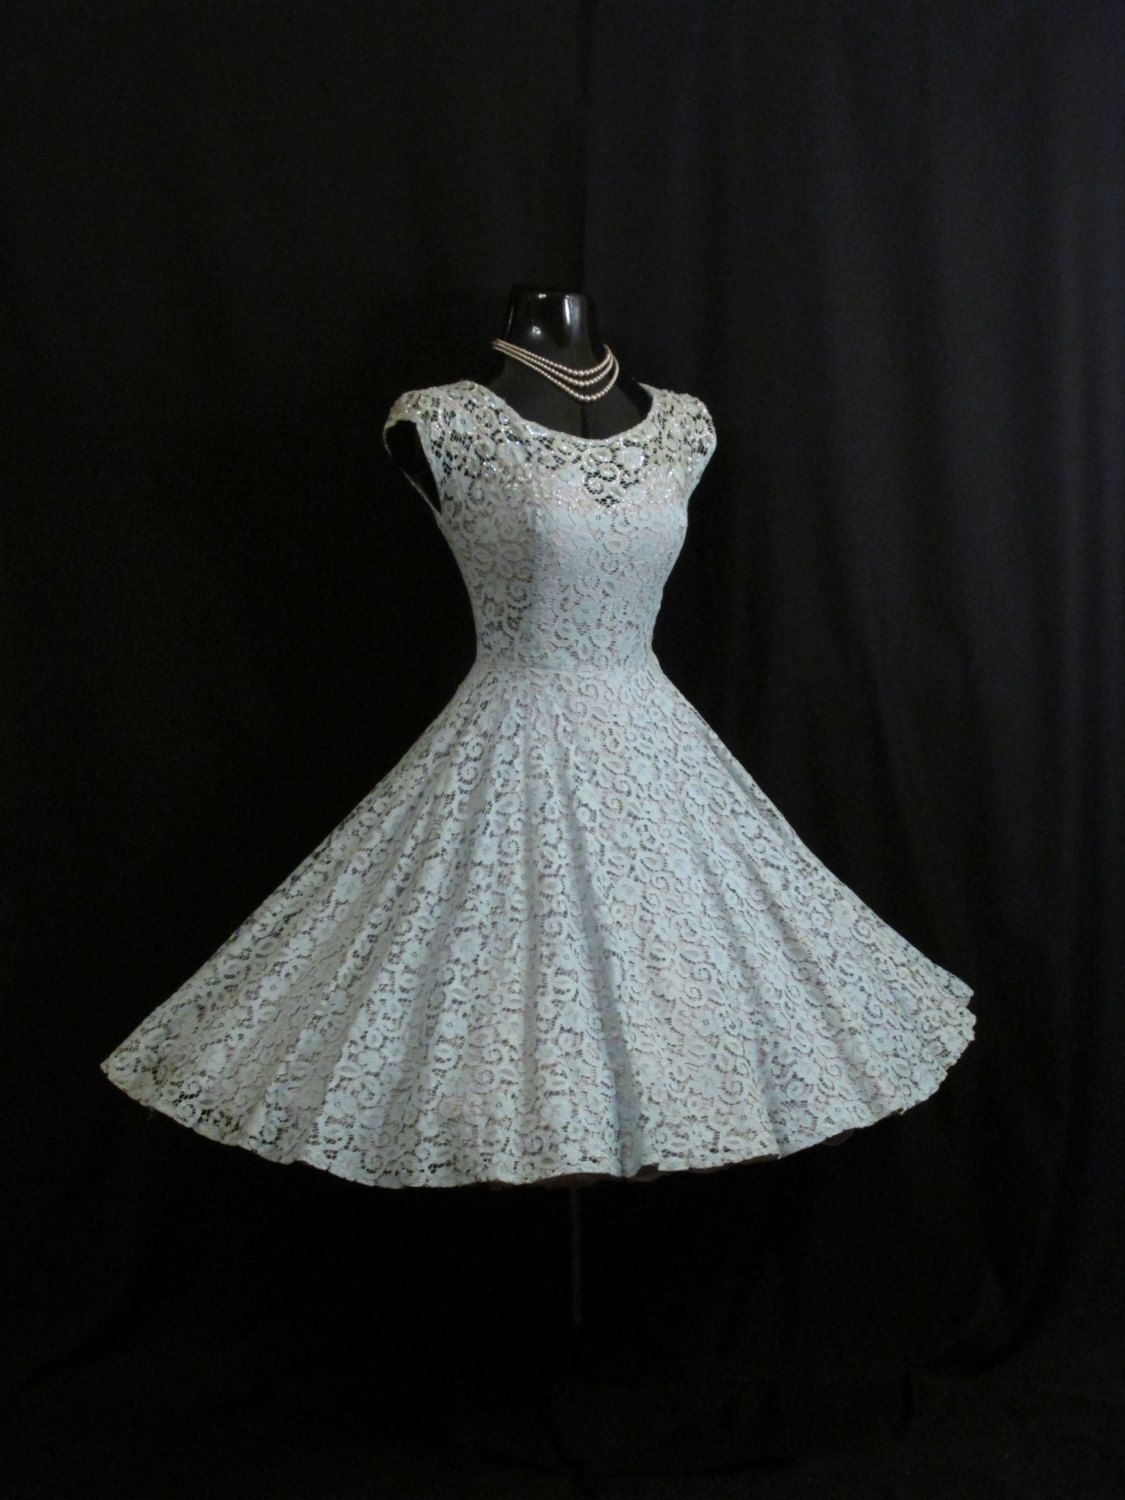 Vintage 1950\'s 50s Baby Blue Floral Lace Sequins Pearls Party Prom ...